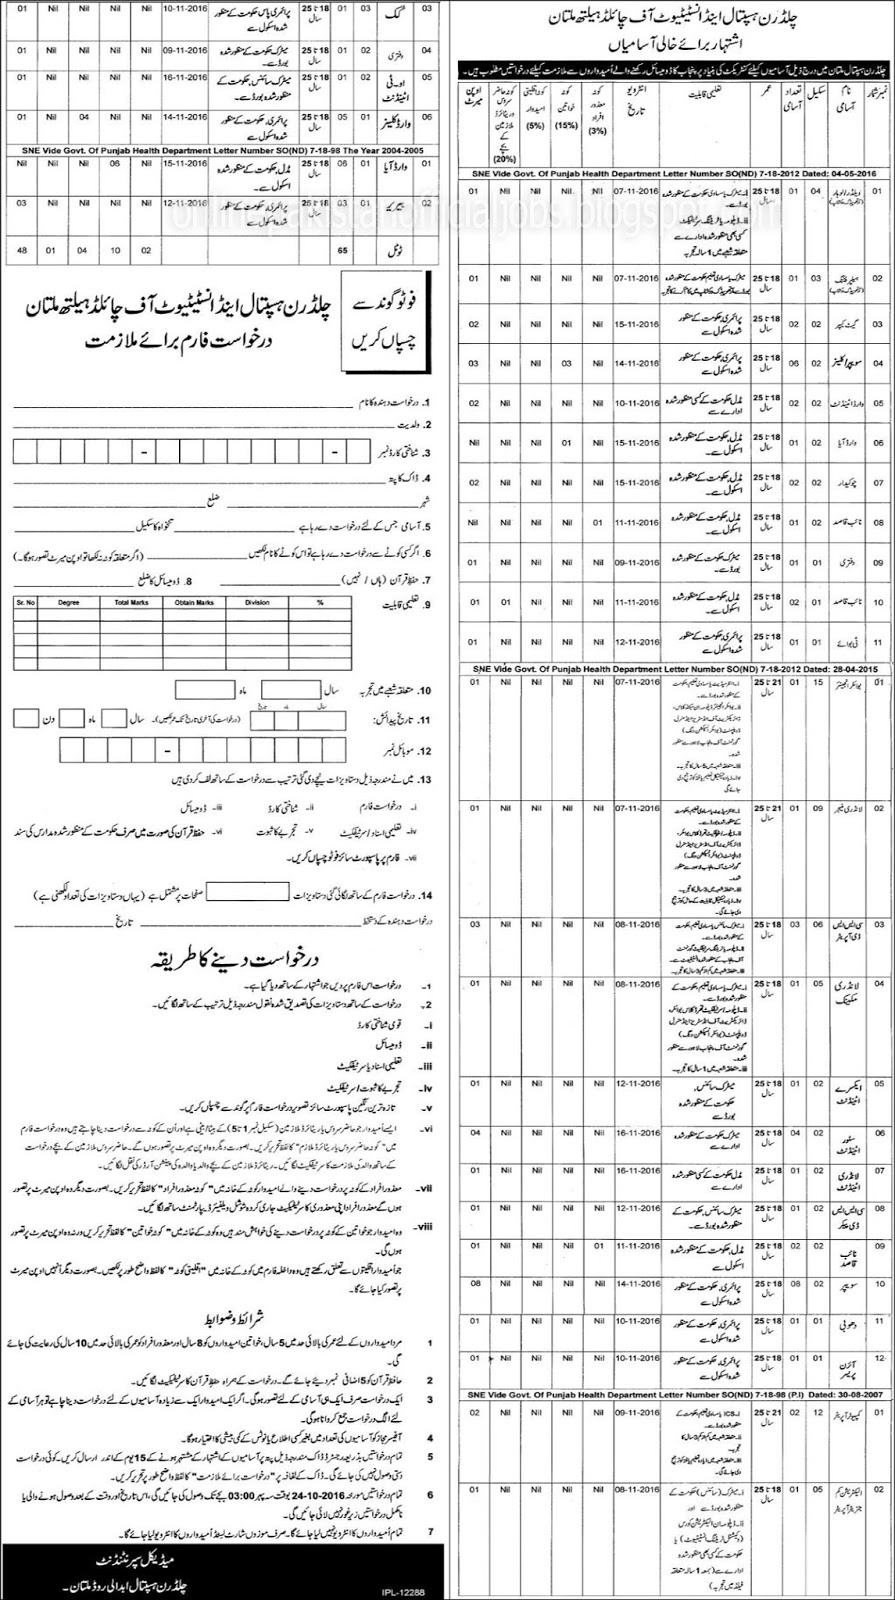 Jobs in Children Hospital and Institute of Child Health Multan